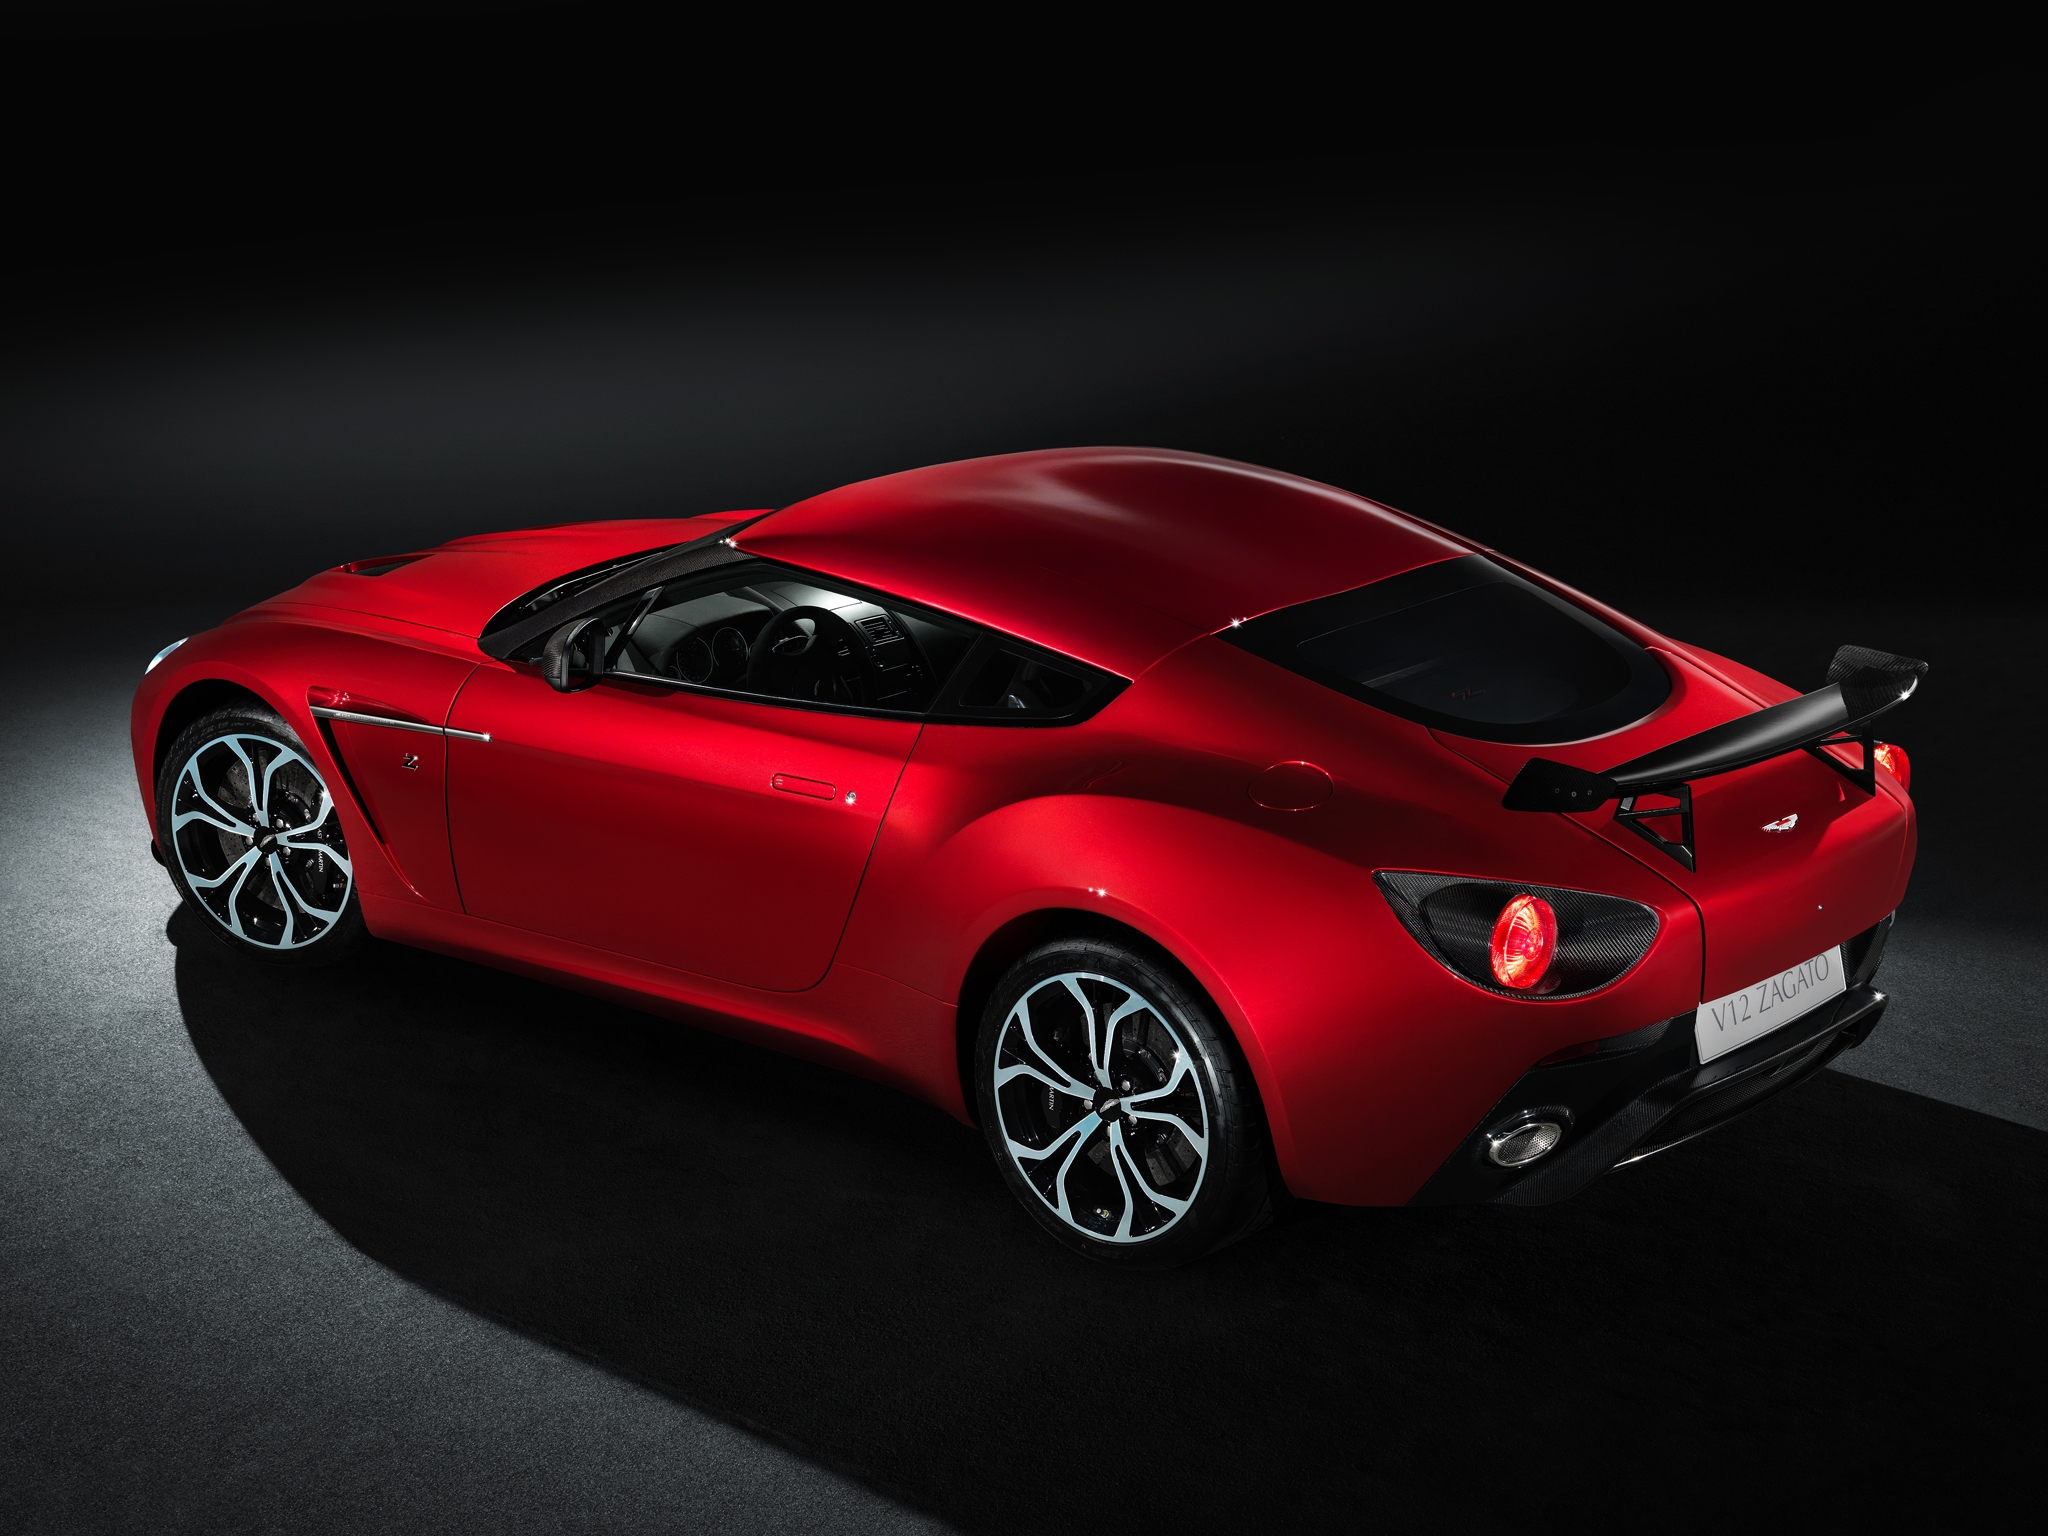 96939 download wallpaper Auto, Aston Martin, Cars, Side View, Style, 2012, V12, Zagato screensavers and pictures for free